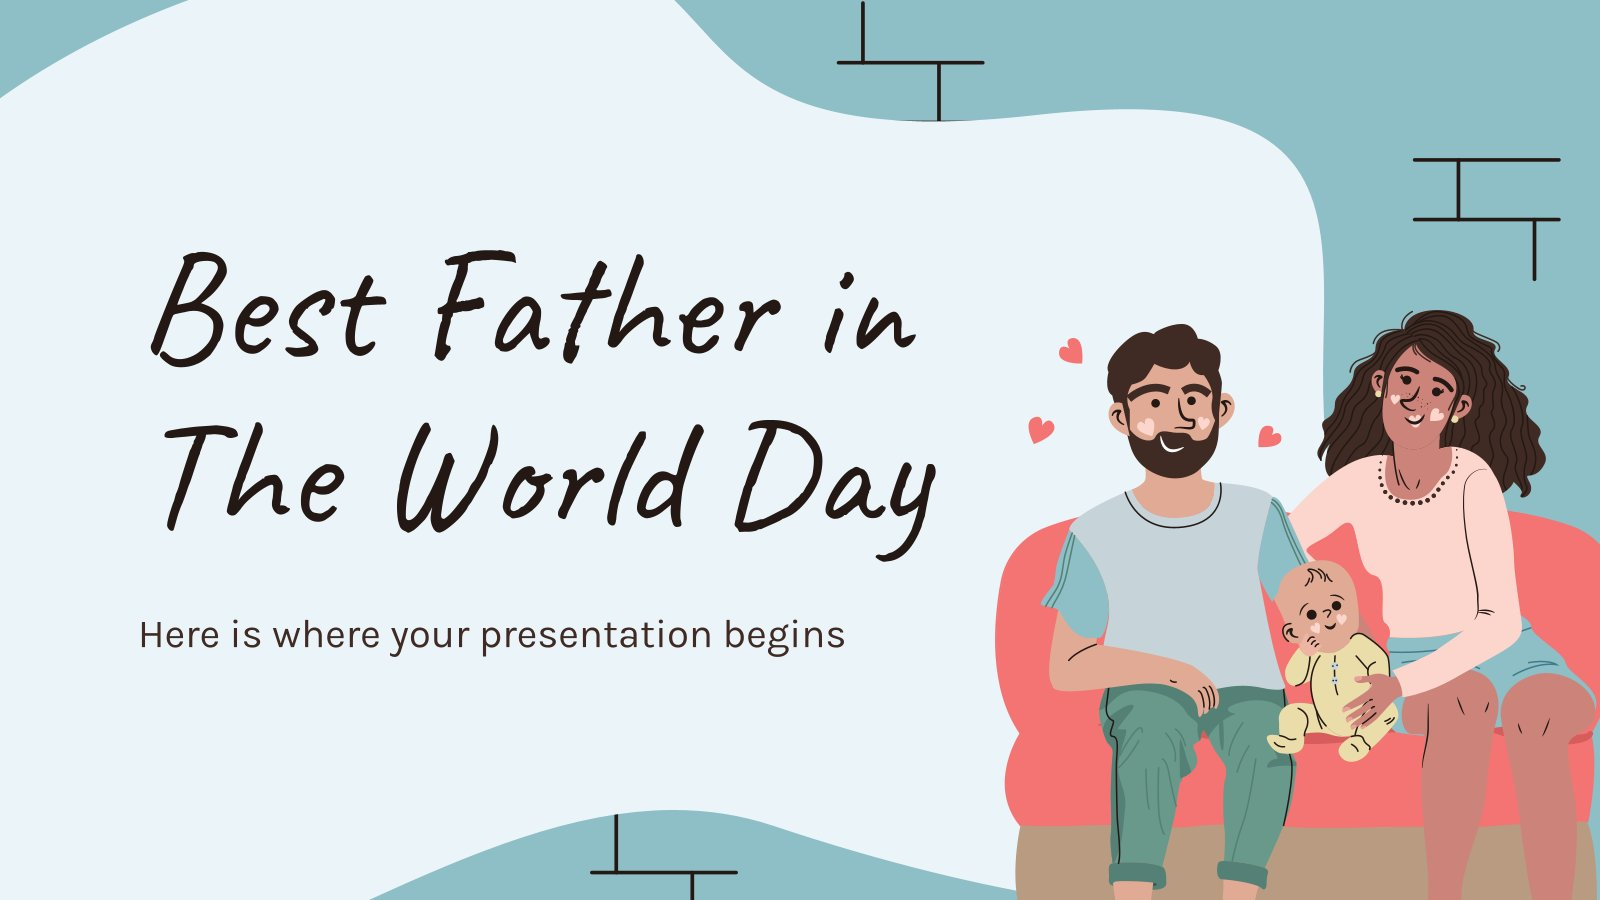 Best Father in The World Day presentation template